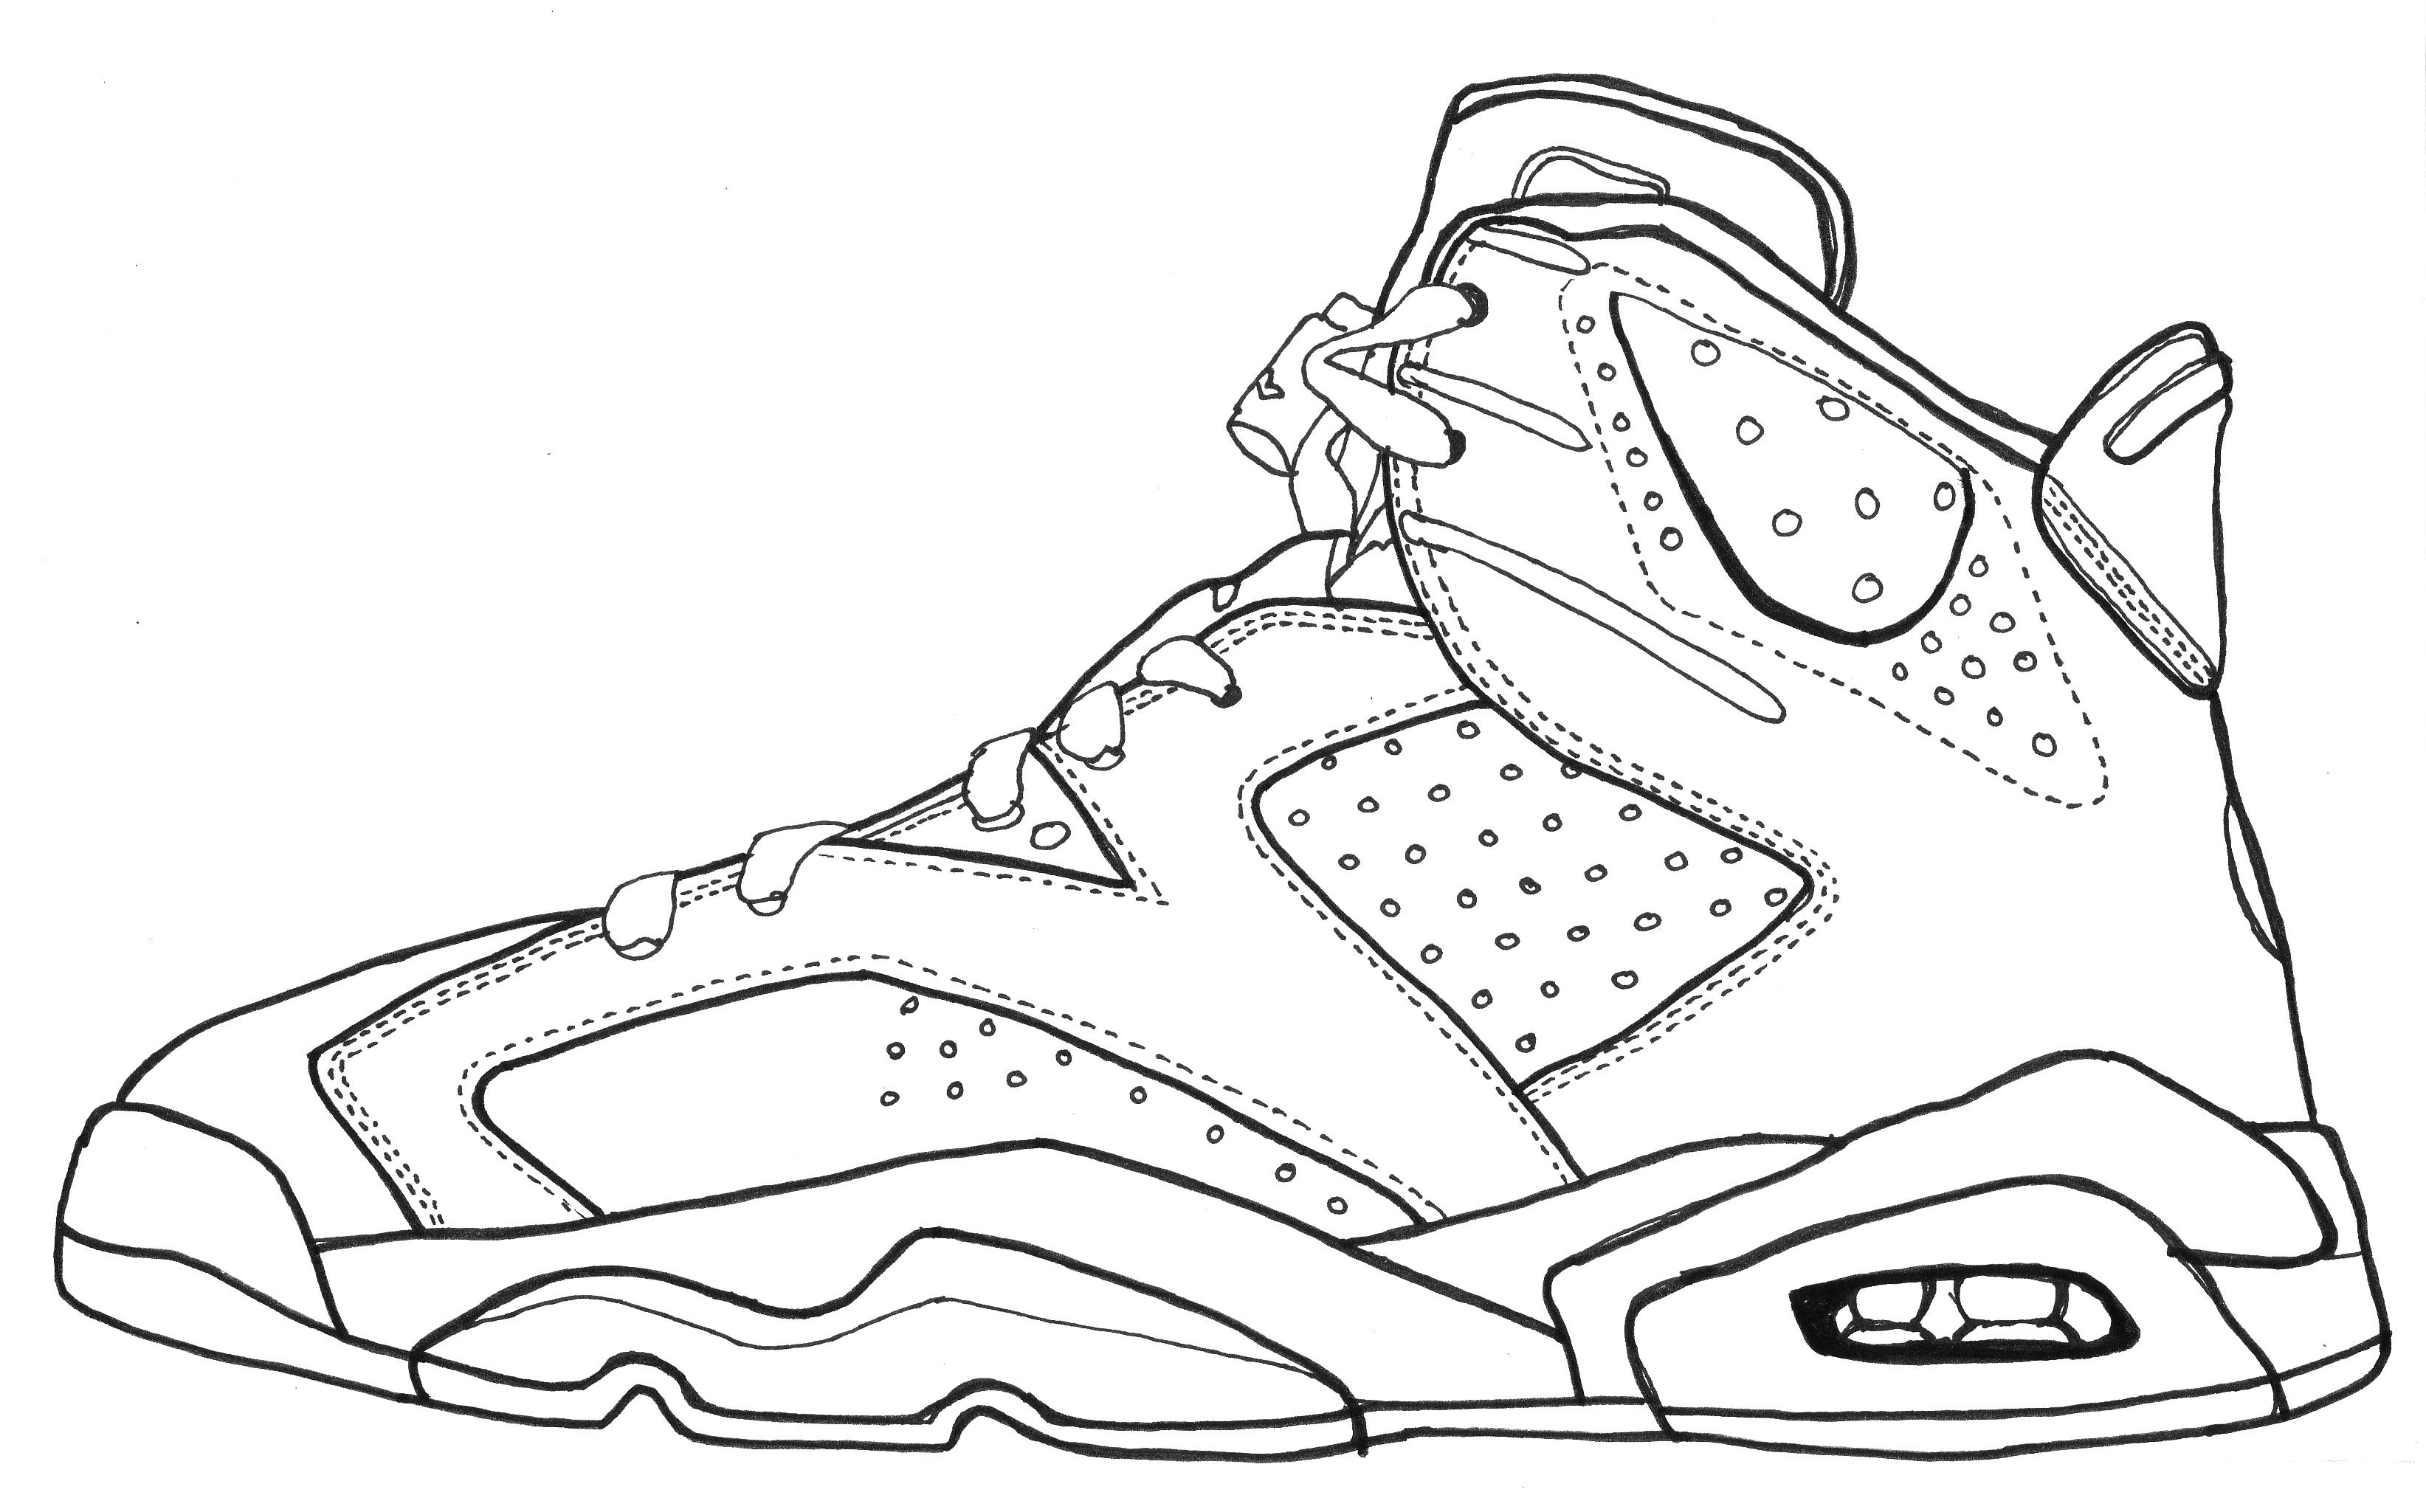 Coloring pages for jordans - Jordan 6